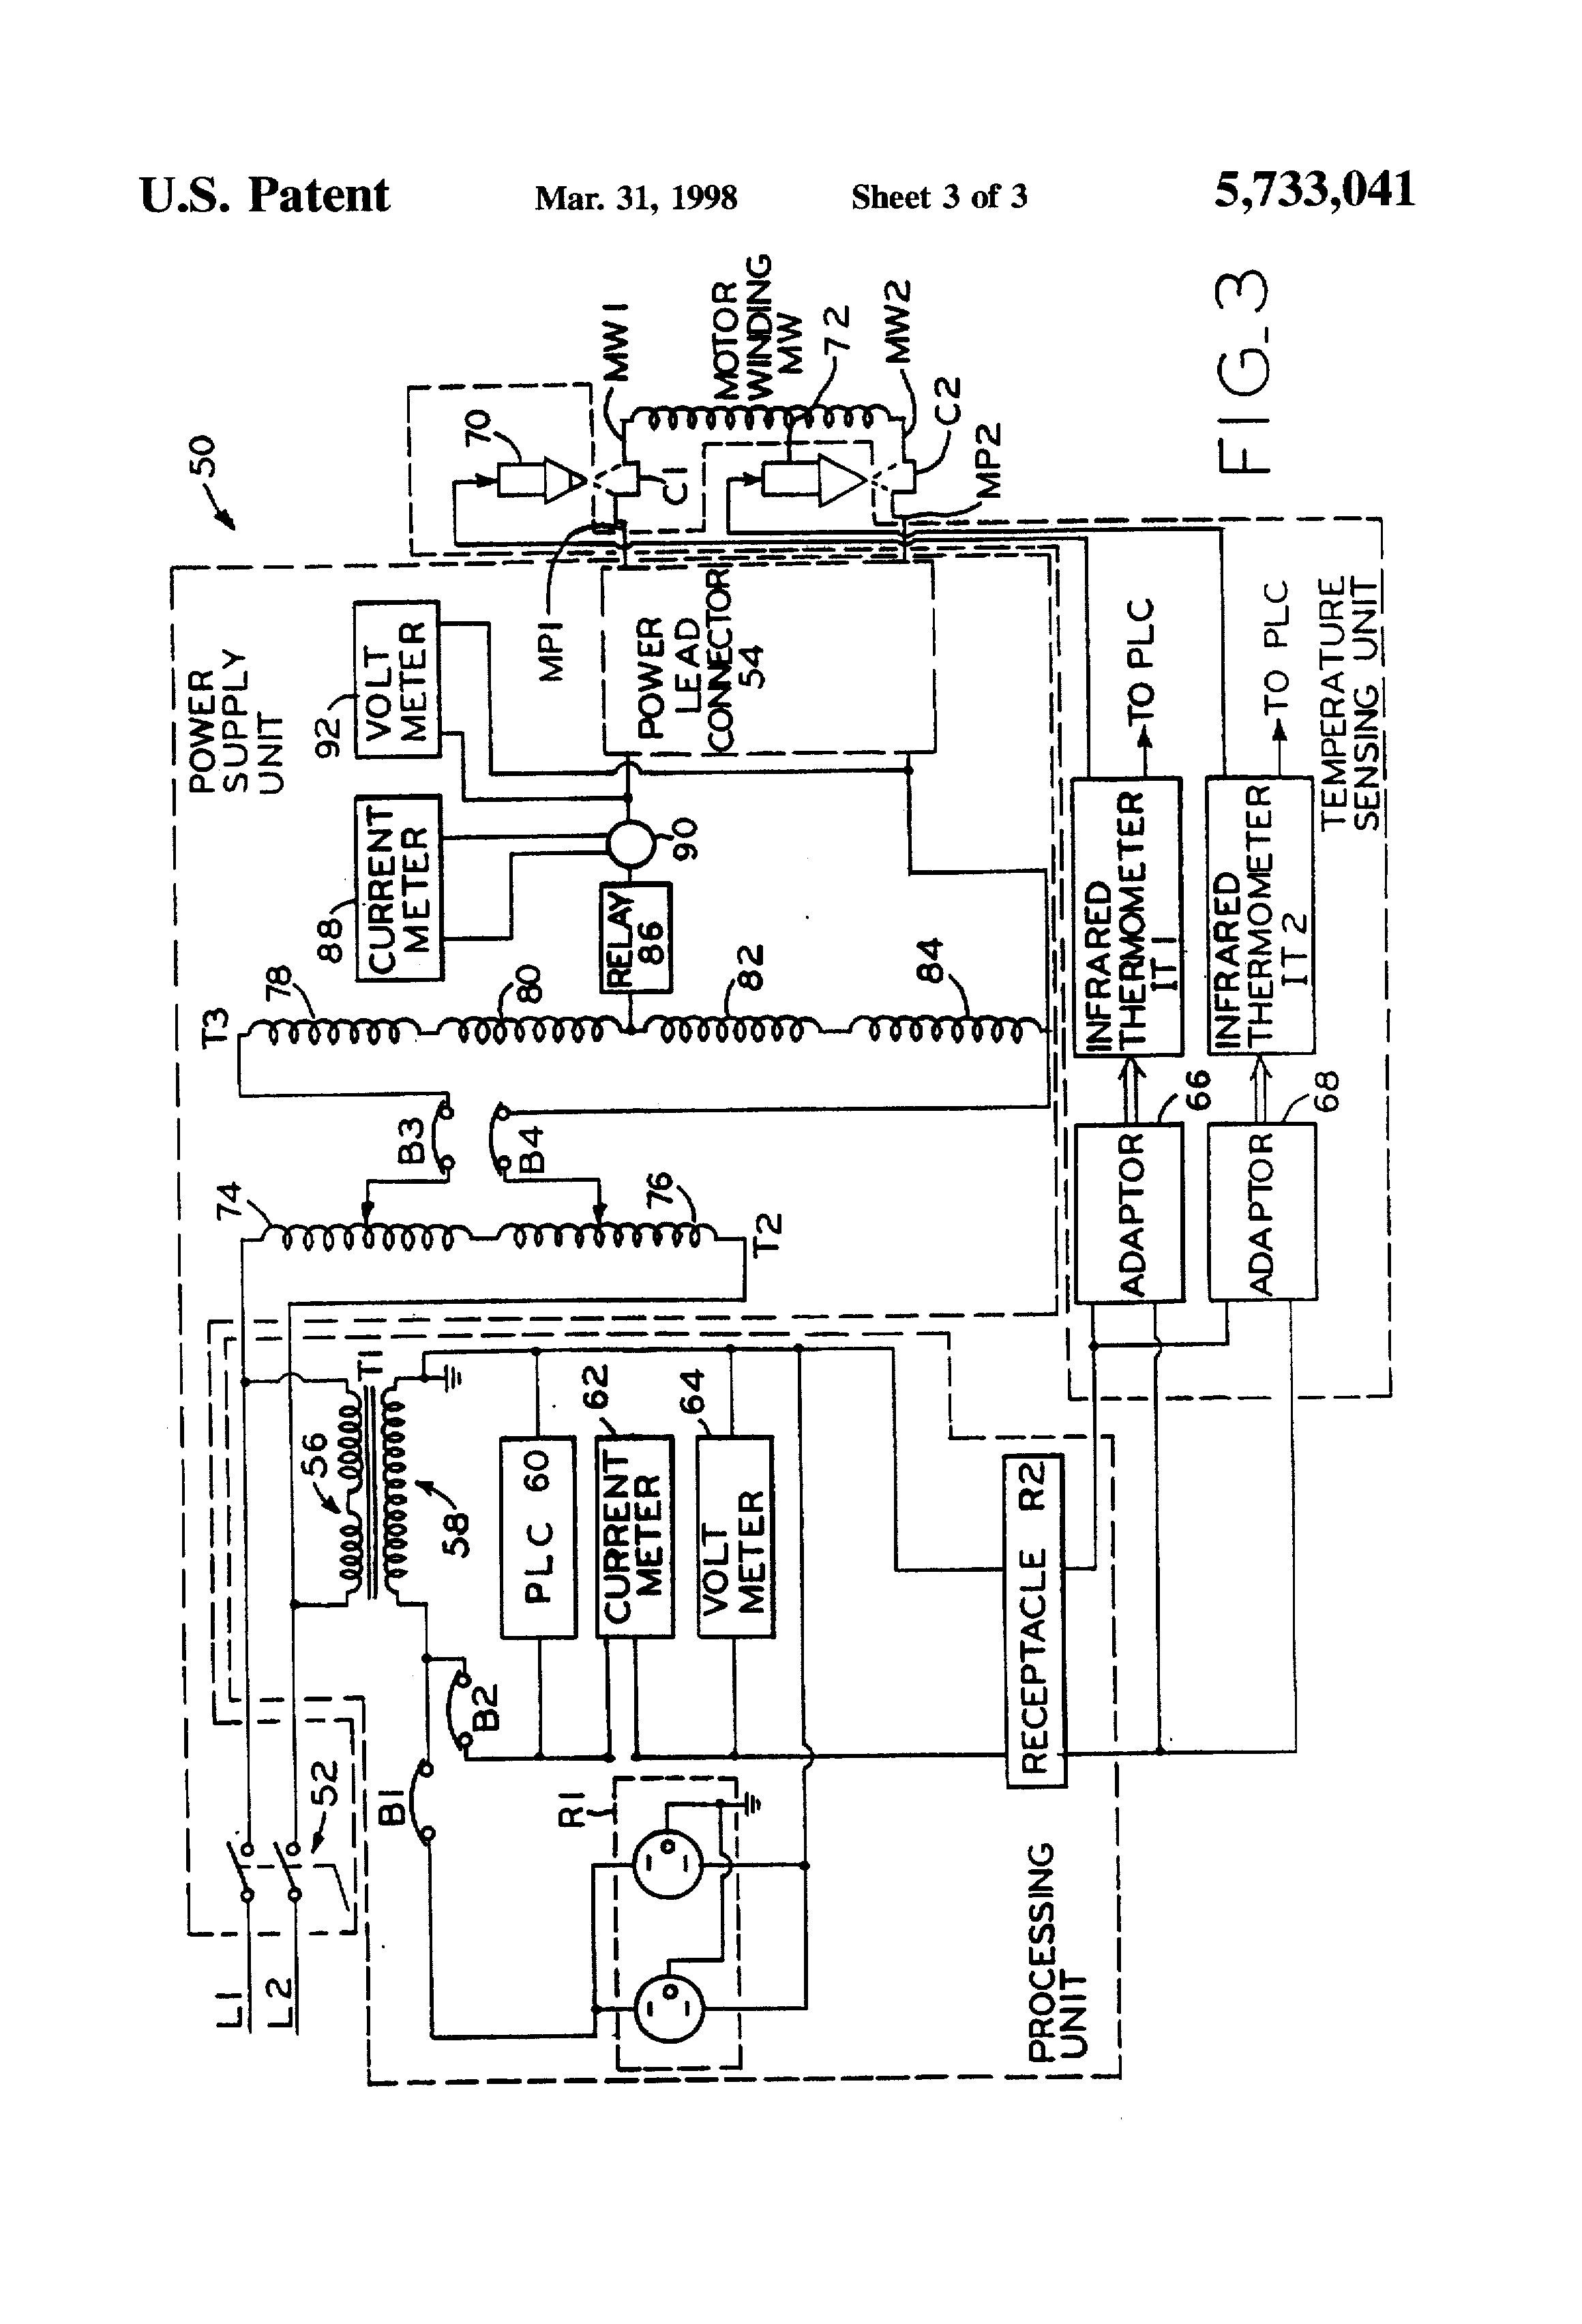 Unique Wiring Diagram Generator Leroy Somer Diagram Diagramtemplate Diagramsample